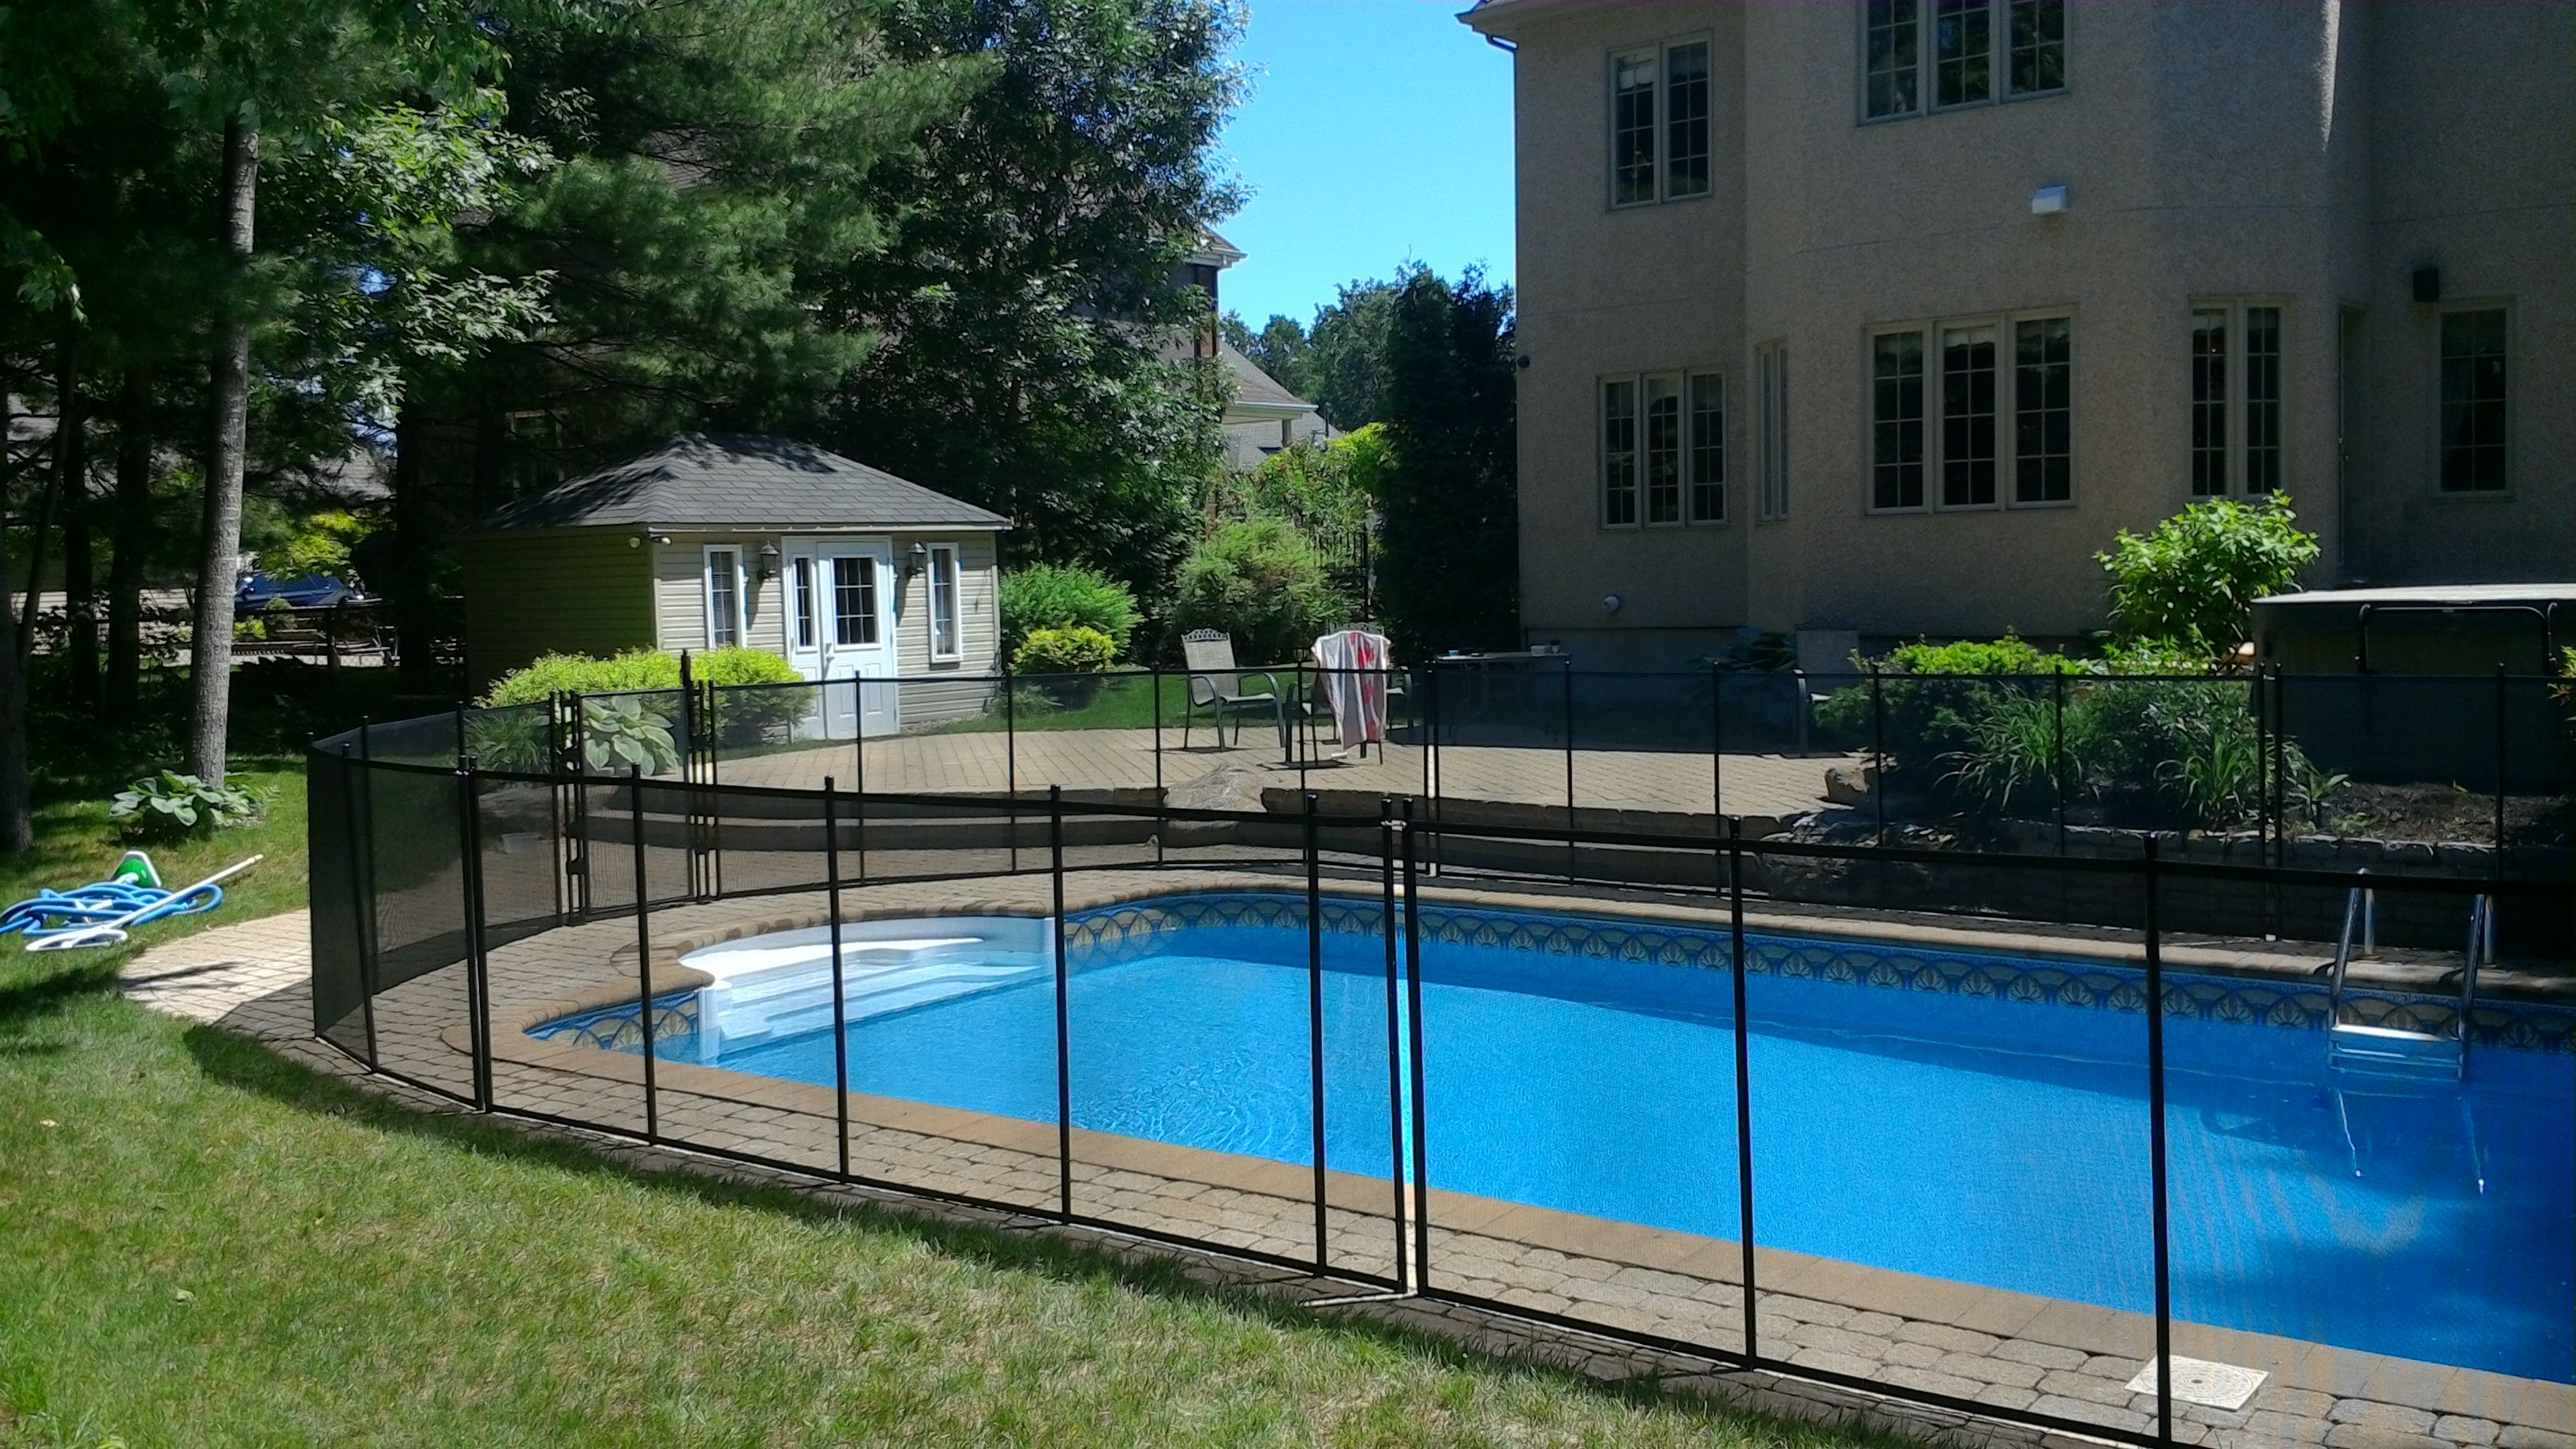 POOL FENCING LAWS | CHILD SAFE POOL FENCE SWIMMING POOL ENCLOSURE ...